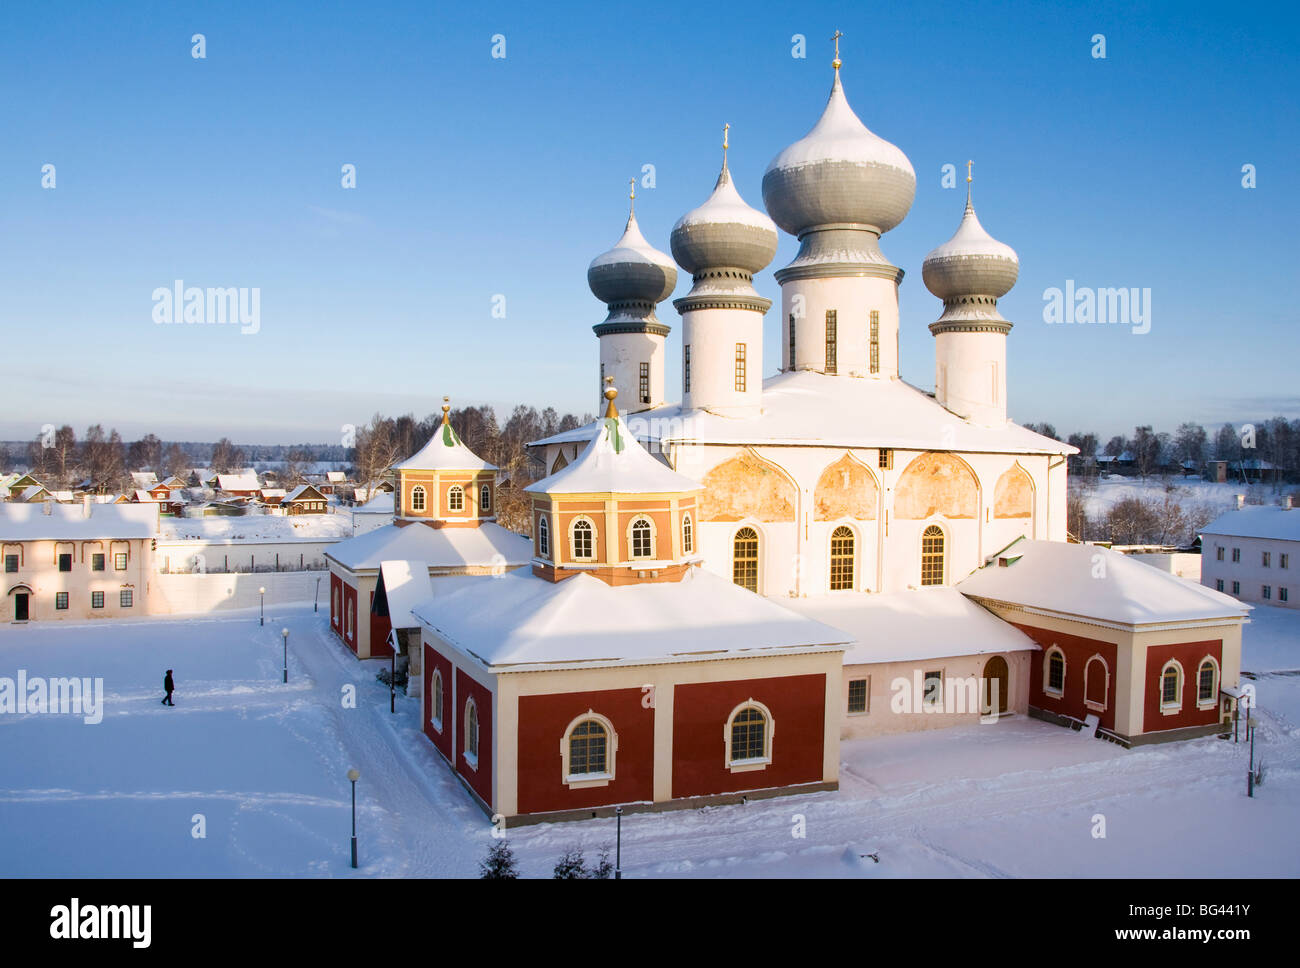 Uspensky Cathedral with the old part of Tikhvin town in winter, Bogorodichno-Uspenskij Monastery, Leningrad region, - Stock Image